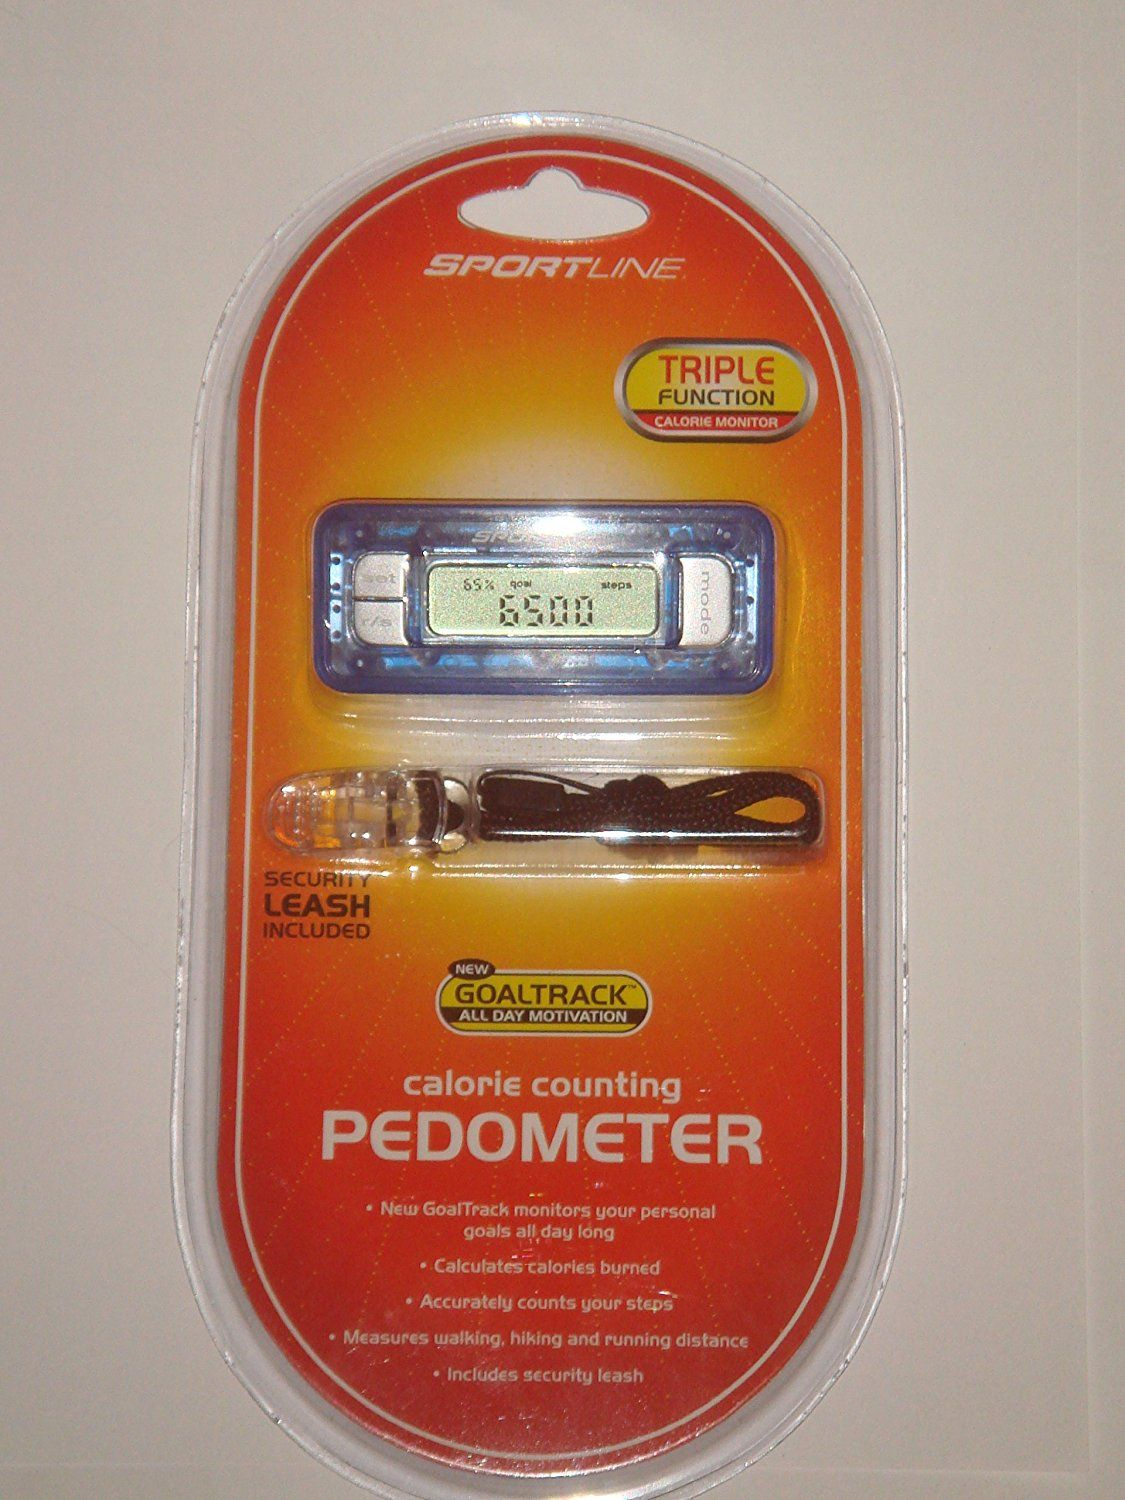 Calorie Counting Pedometer Gt Gt Gt Be Sure To Check Out This